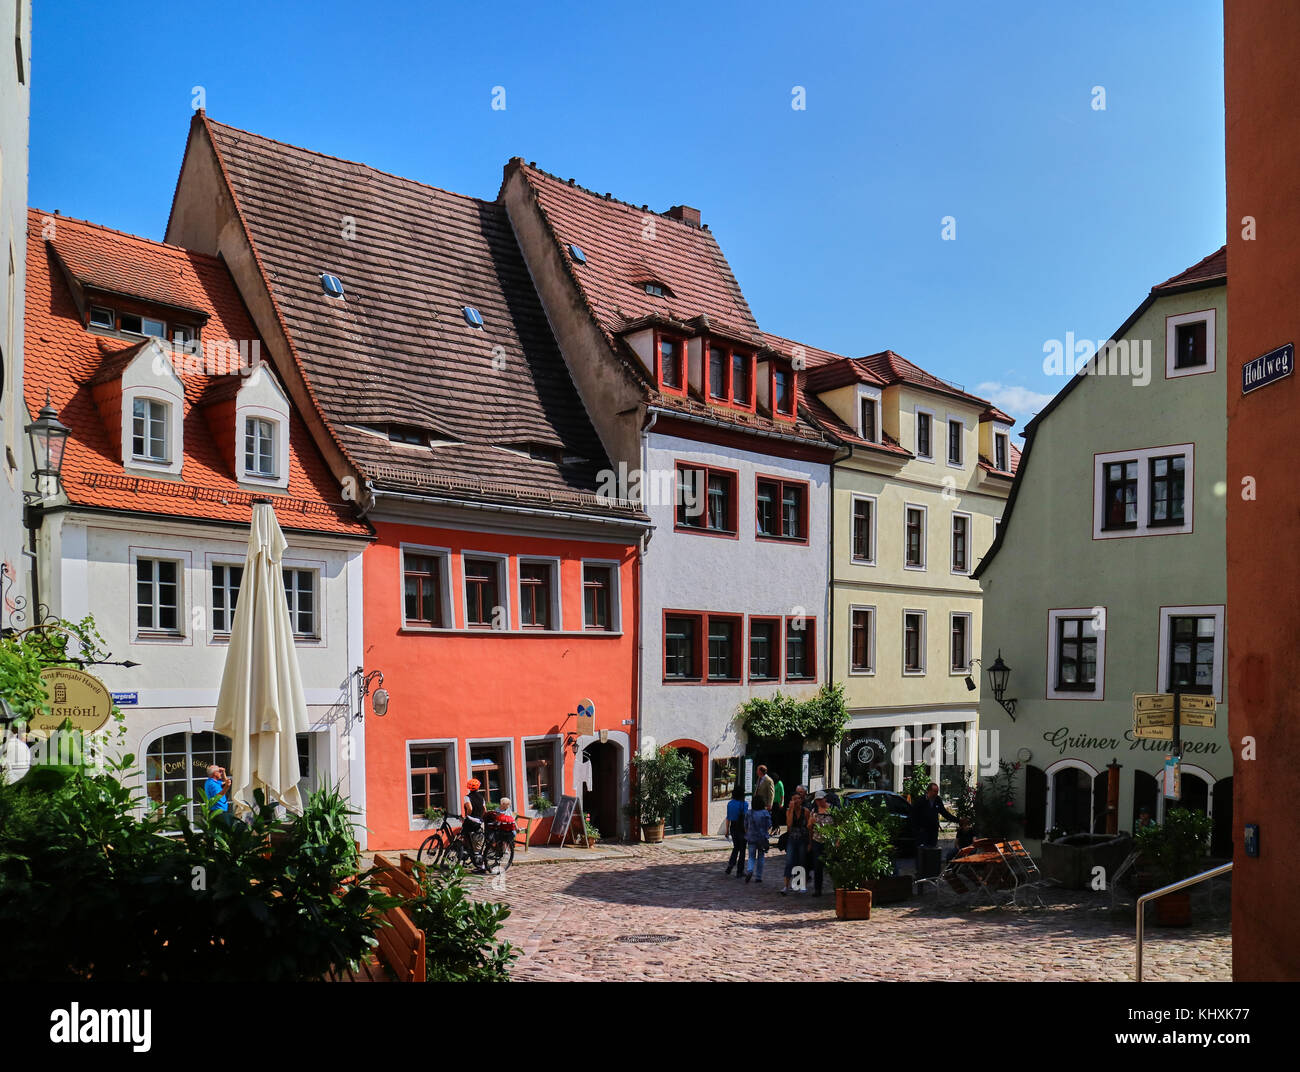 Europe, Germany, Saxony, Meissen, the old town,  This city was founded by Henry I of Saxony in 922 on a rock overlooking - Stock Image